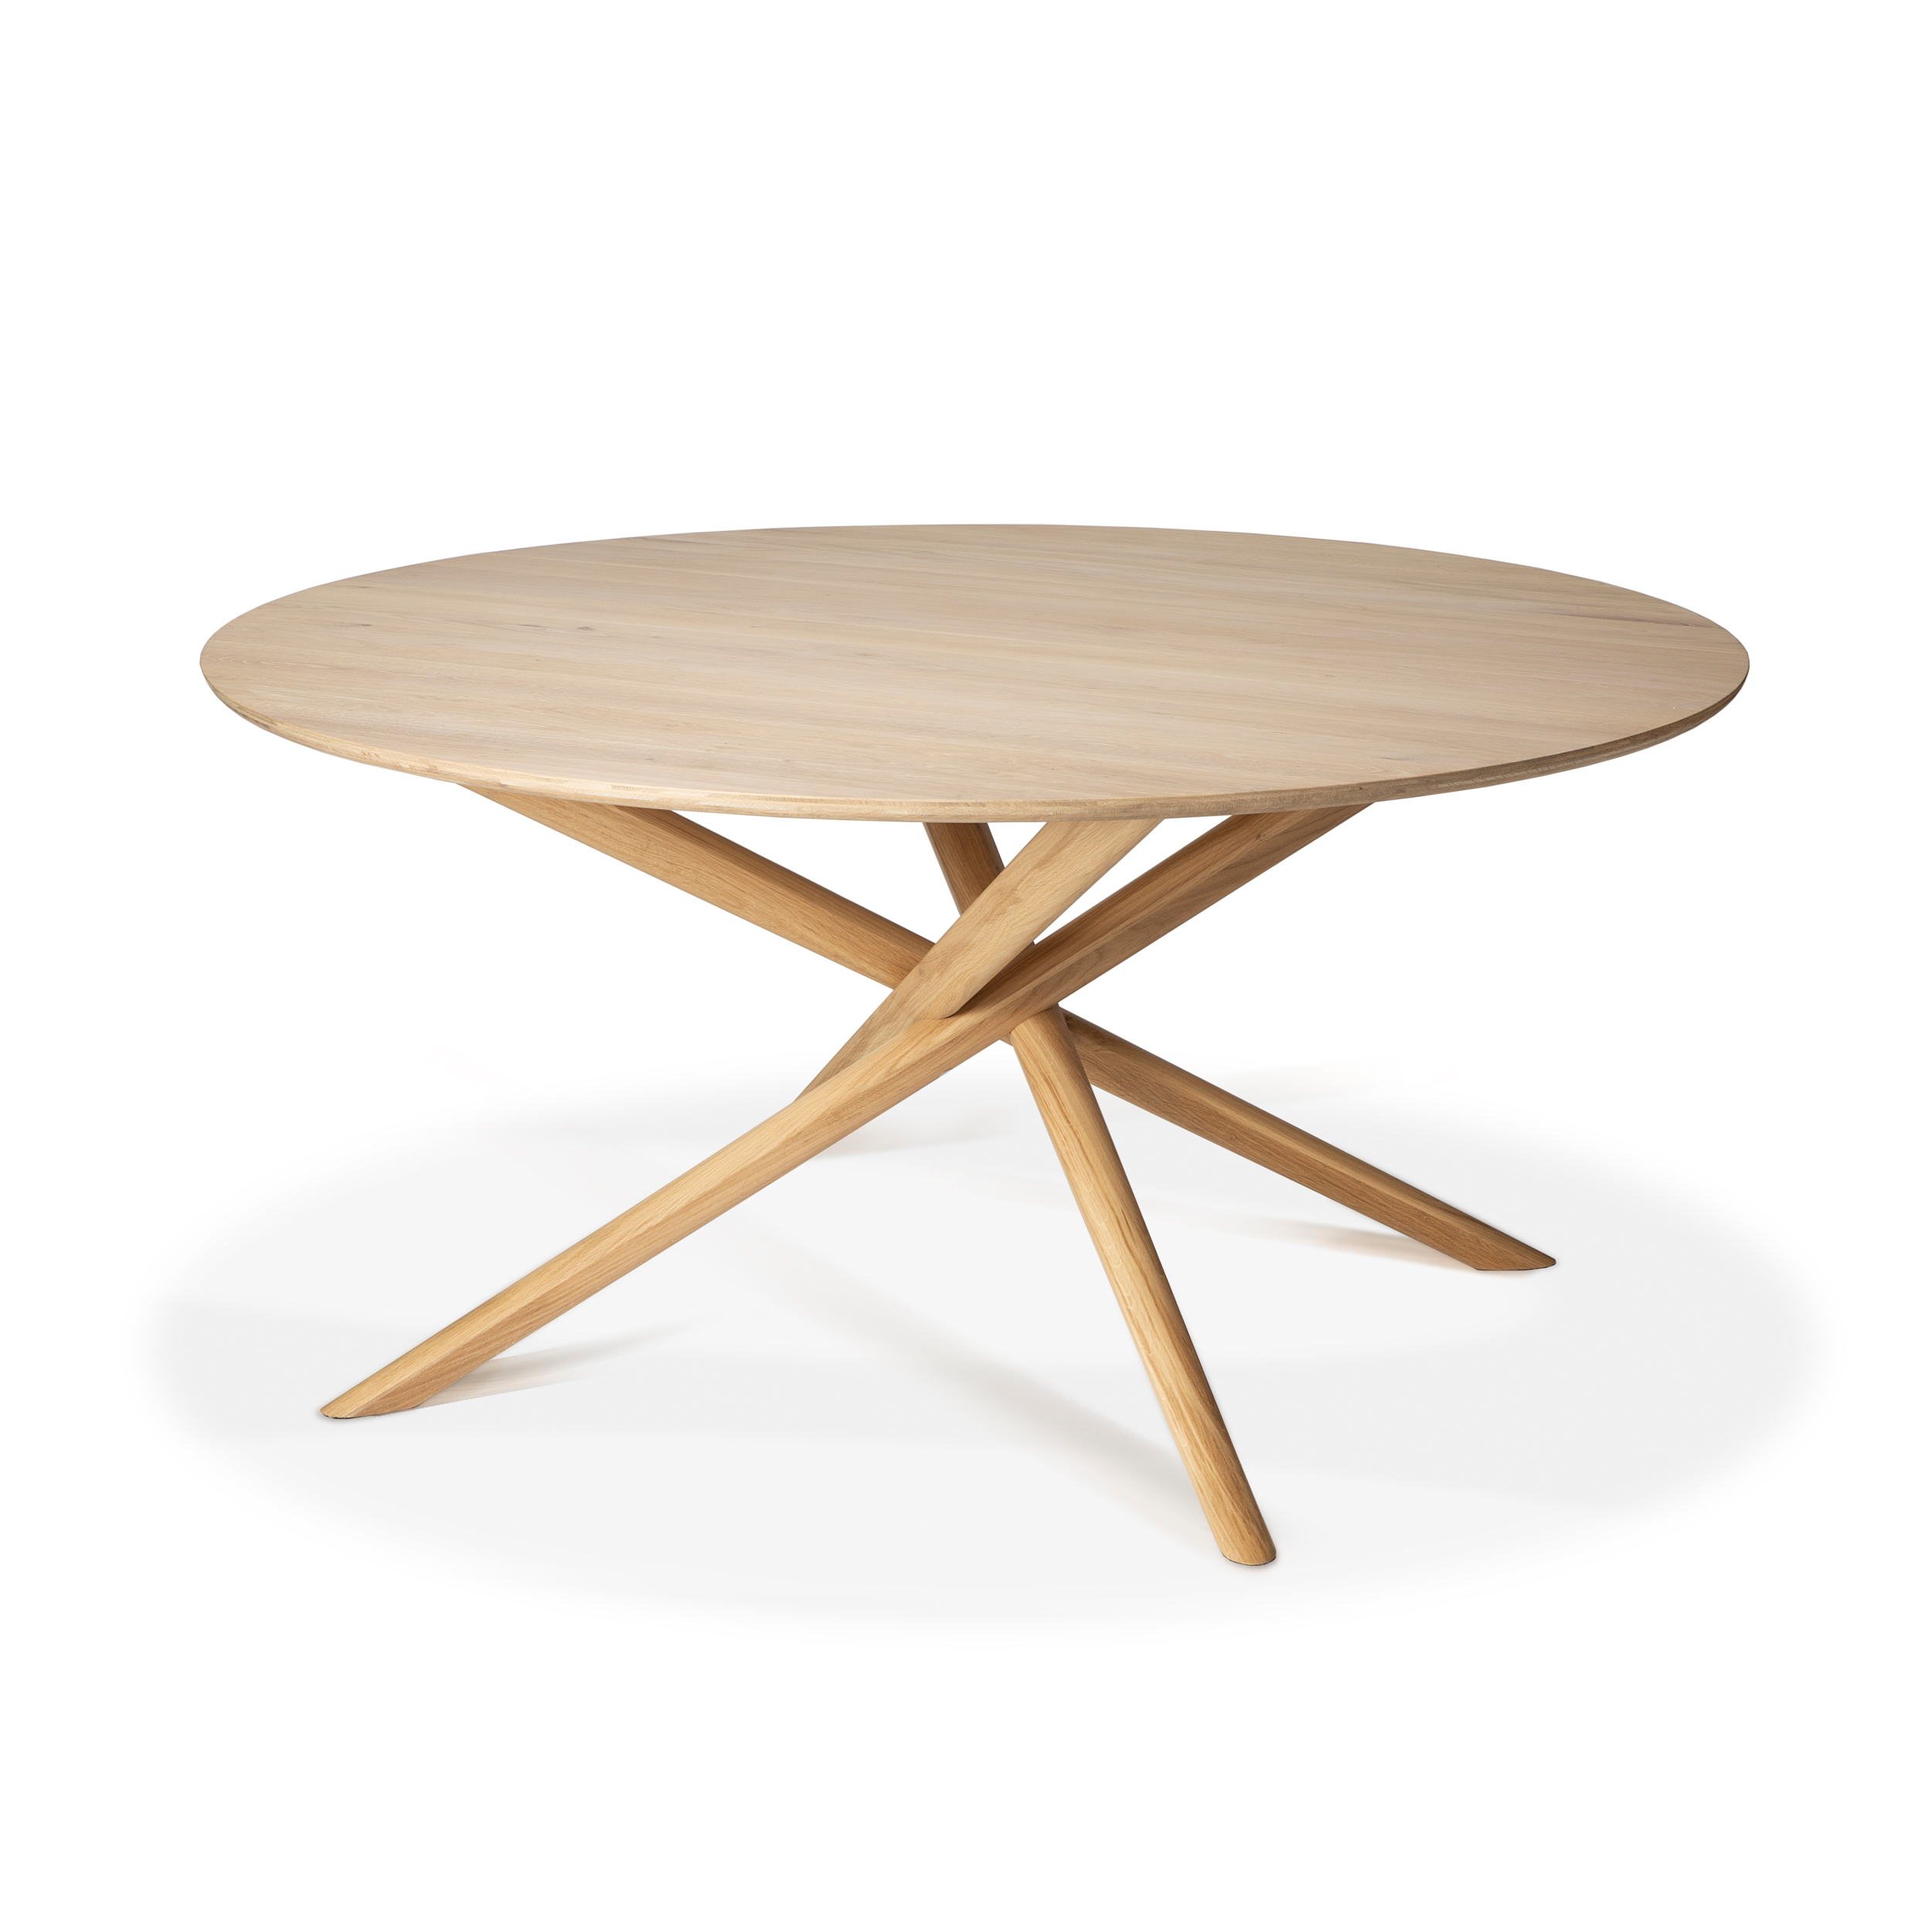 50545 Oak Mikado round dining table (1) (2).jpg.png